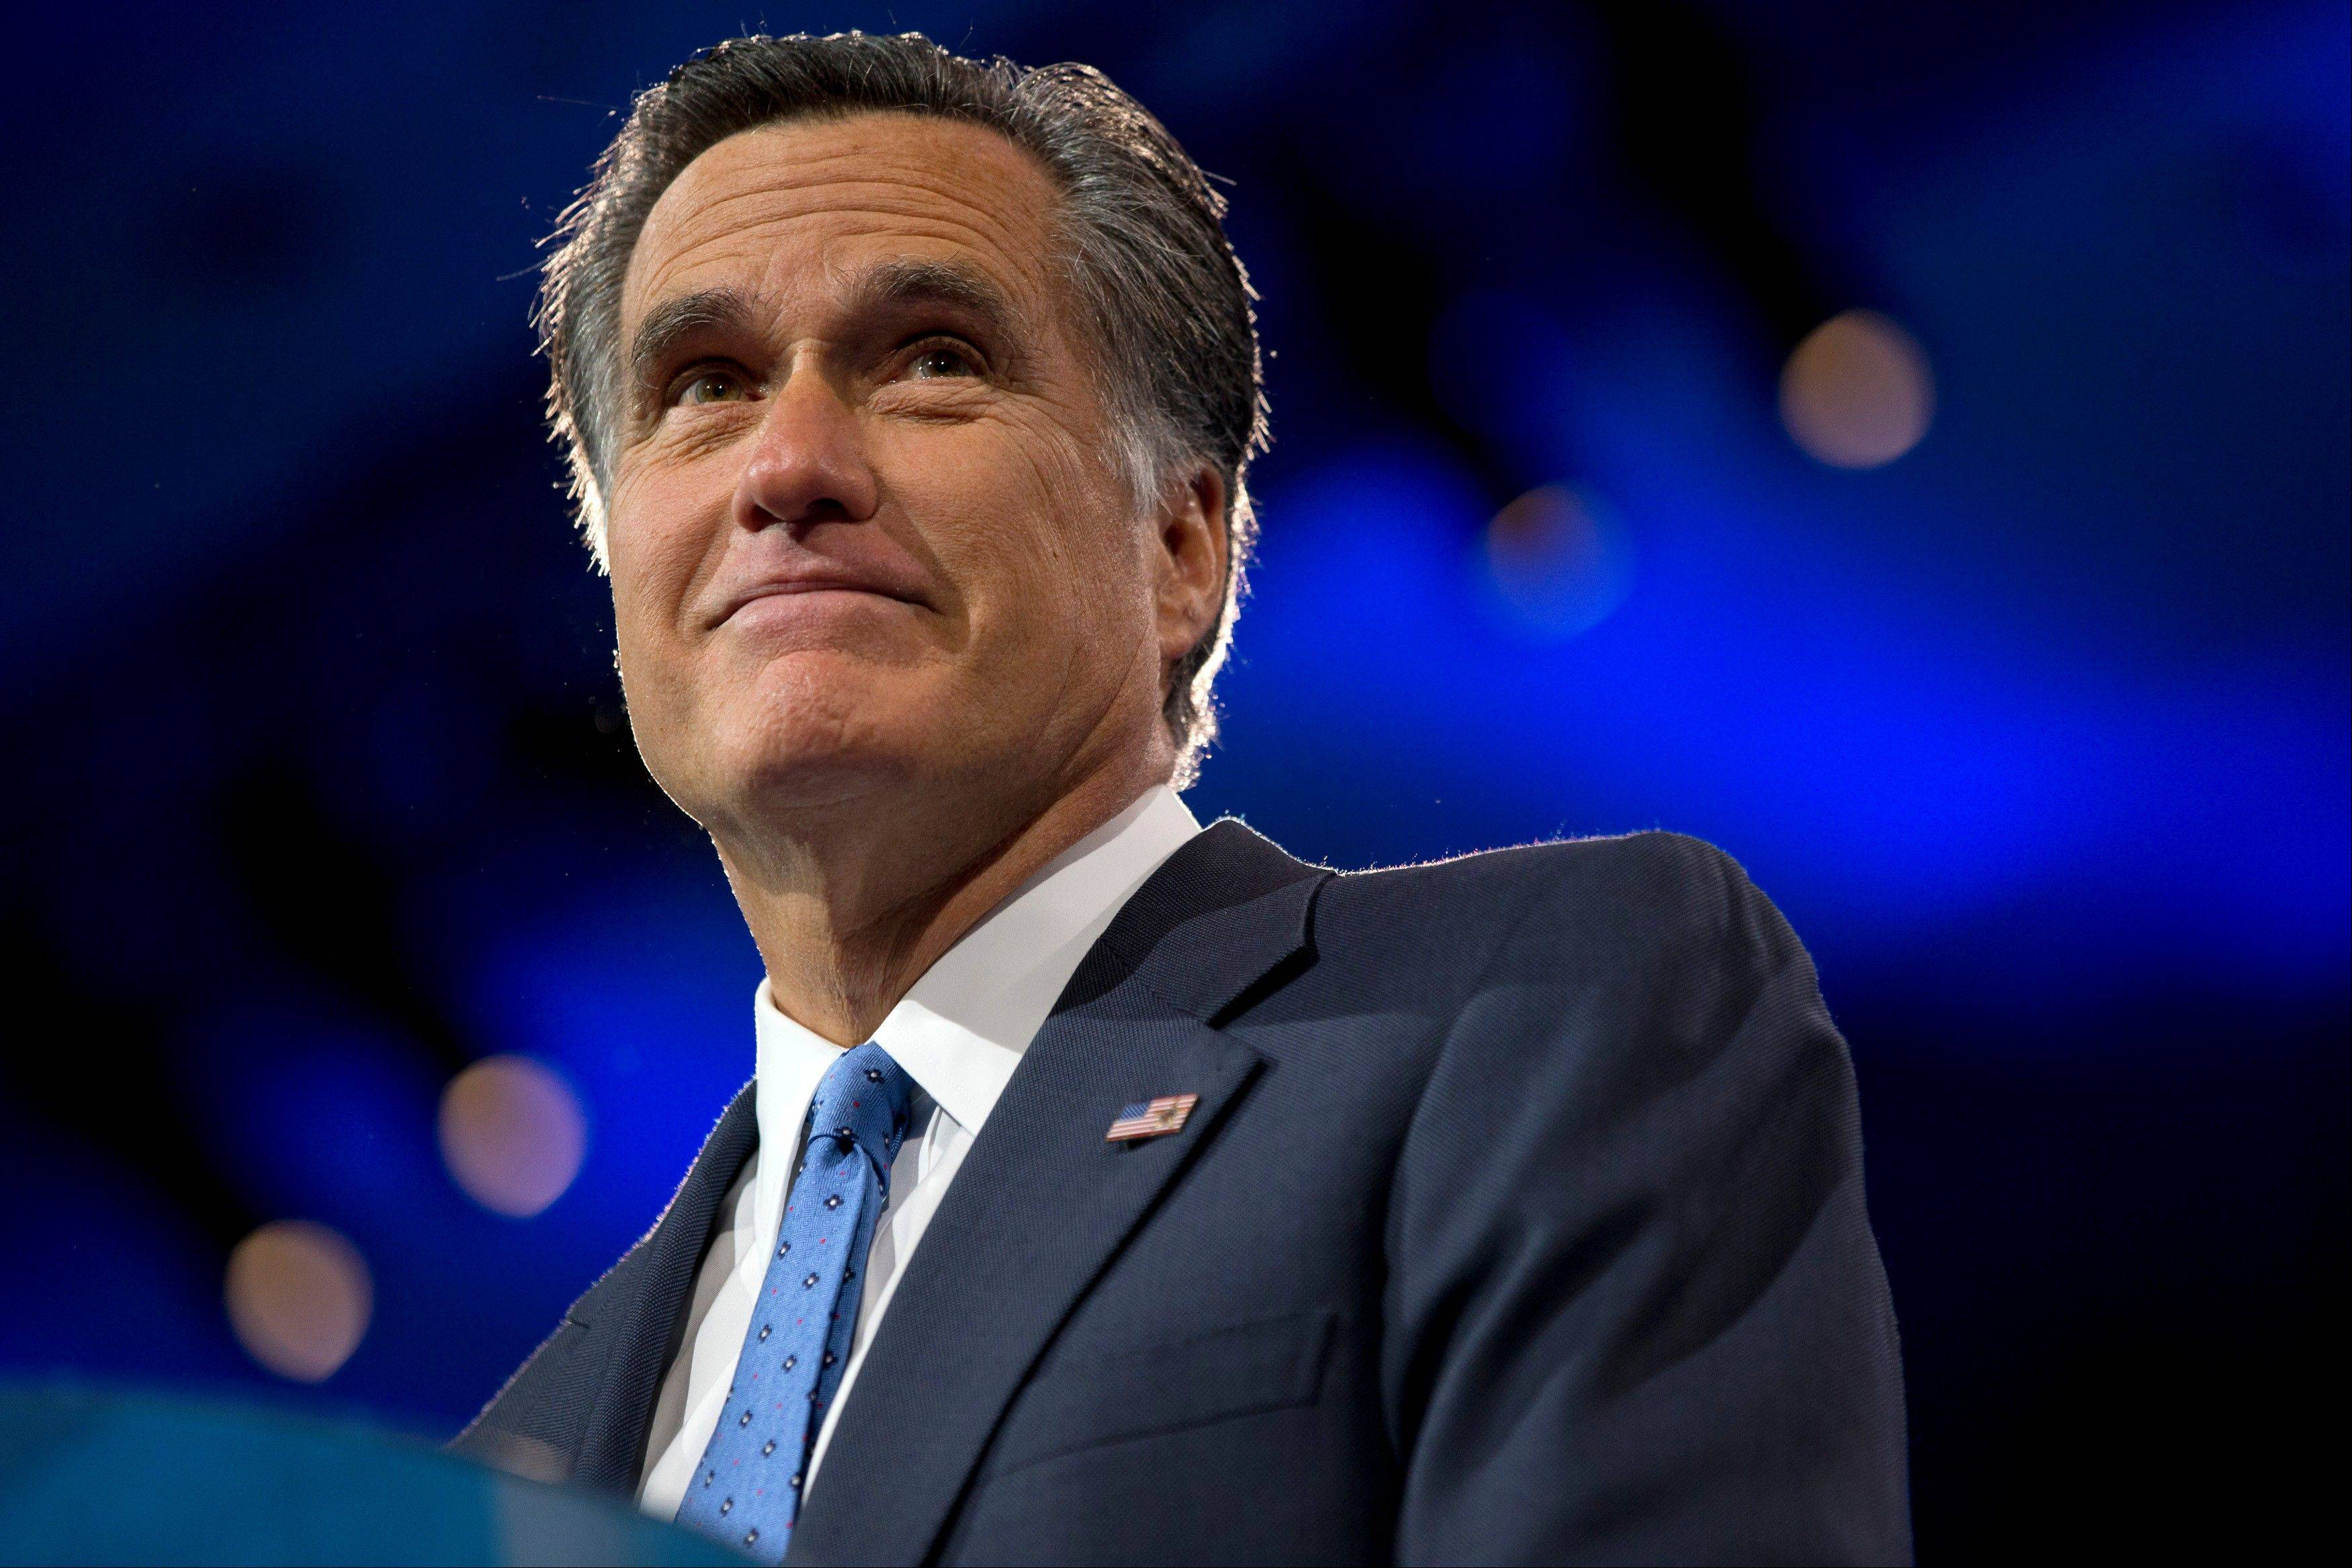 Former Massachusetts governor and 2012 Republican presidential candidate, Mitt Romney pauses while speaking Friday at the 40th annual Conservative Political Action Conference in National Harbor, Md.